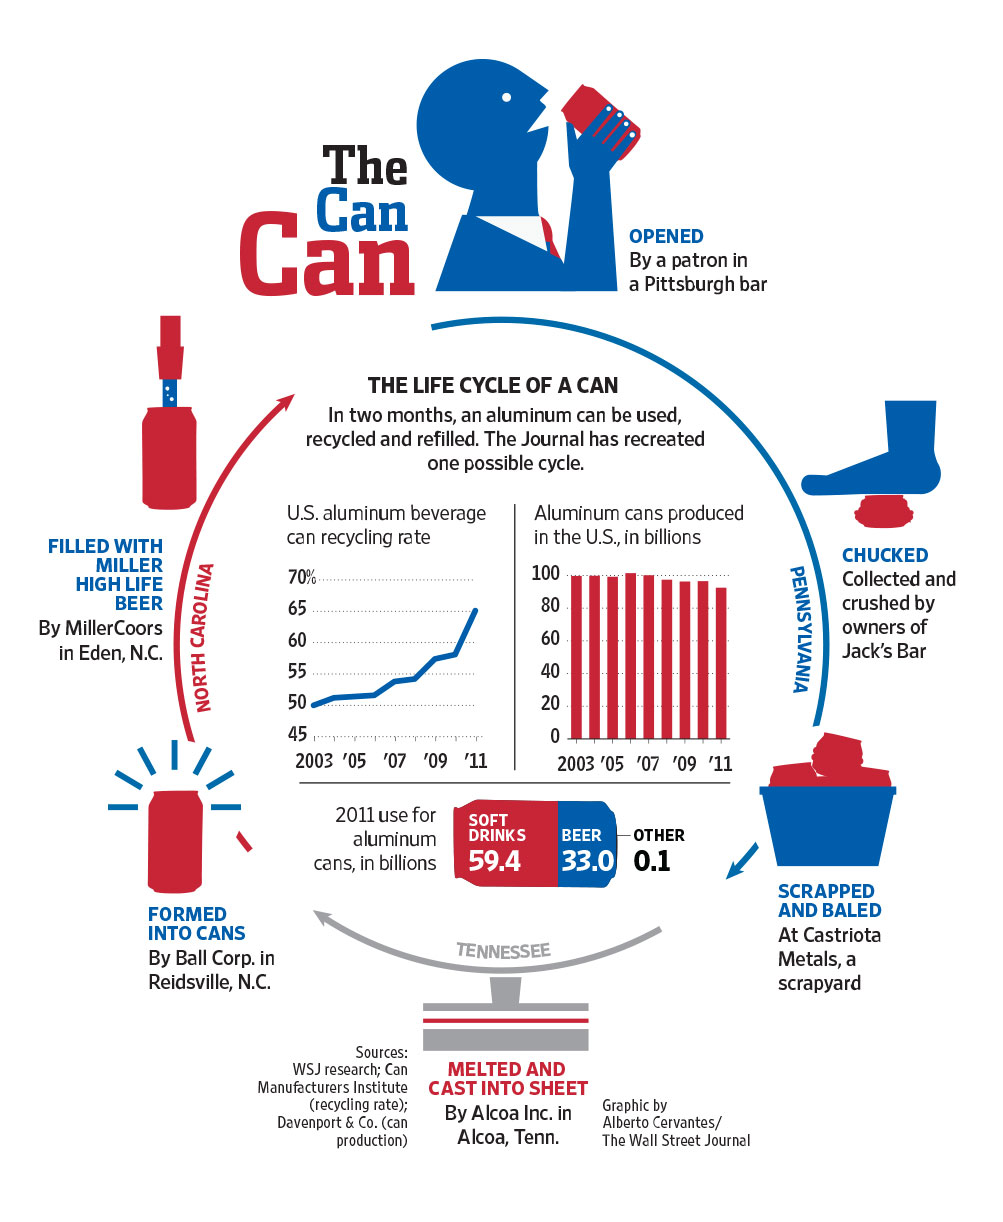 The Life Cycle of a Can | Alberto Cervantes